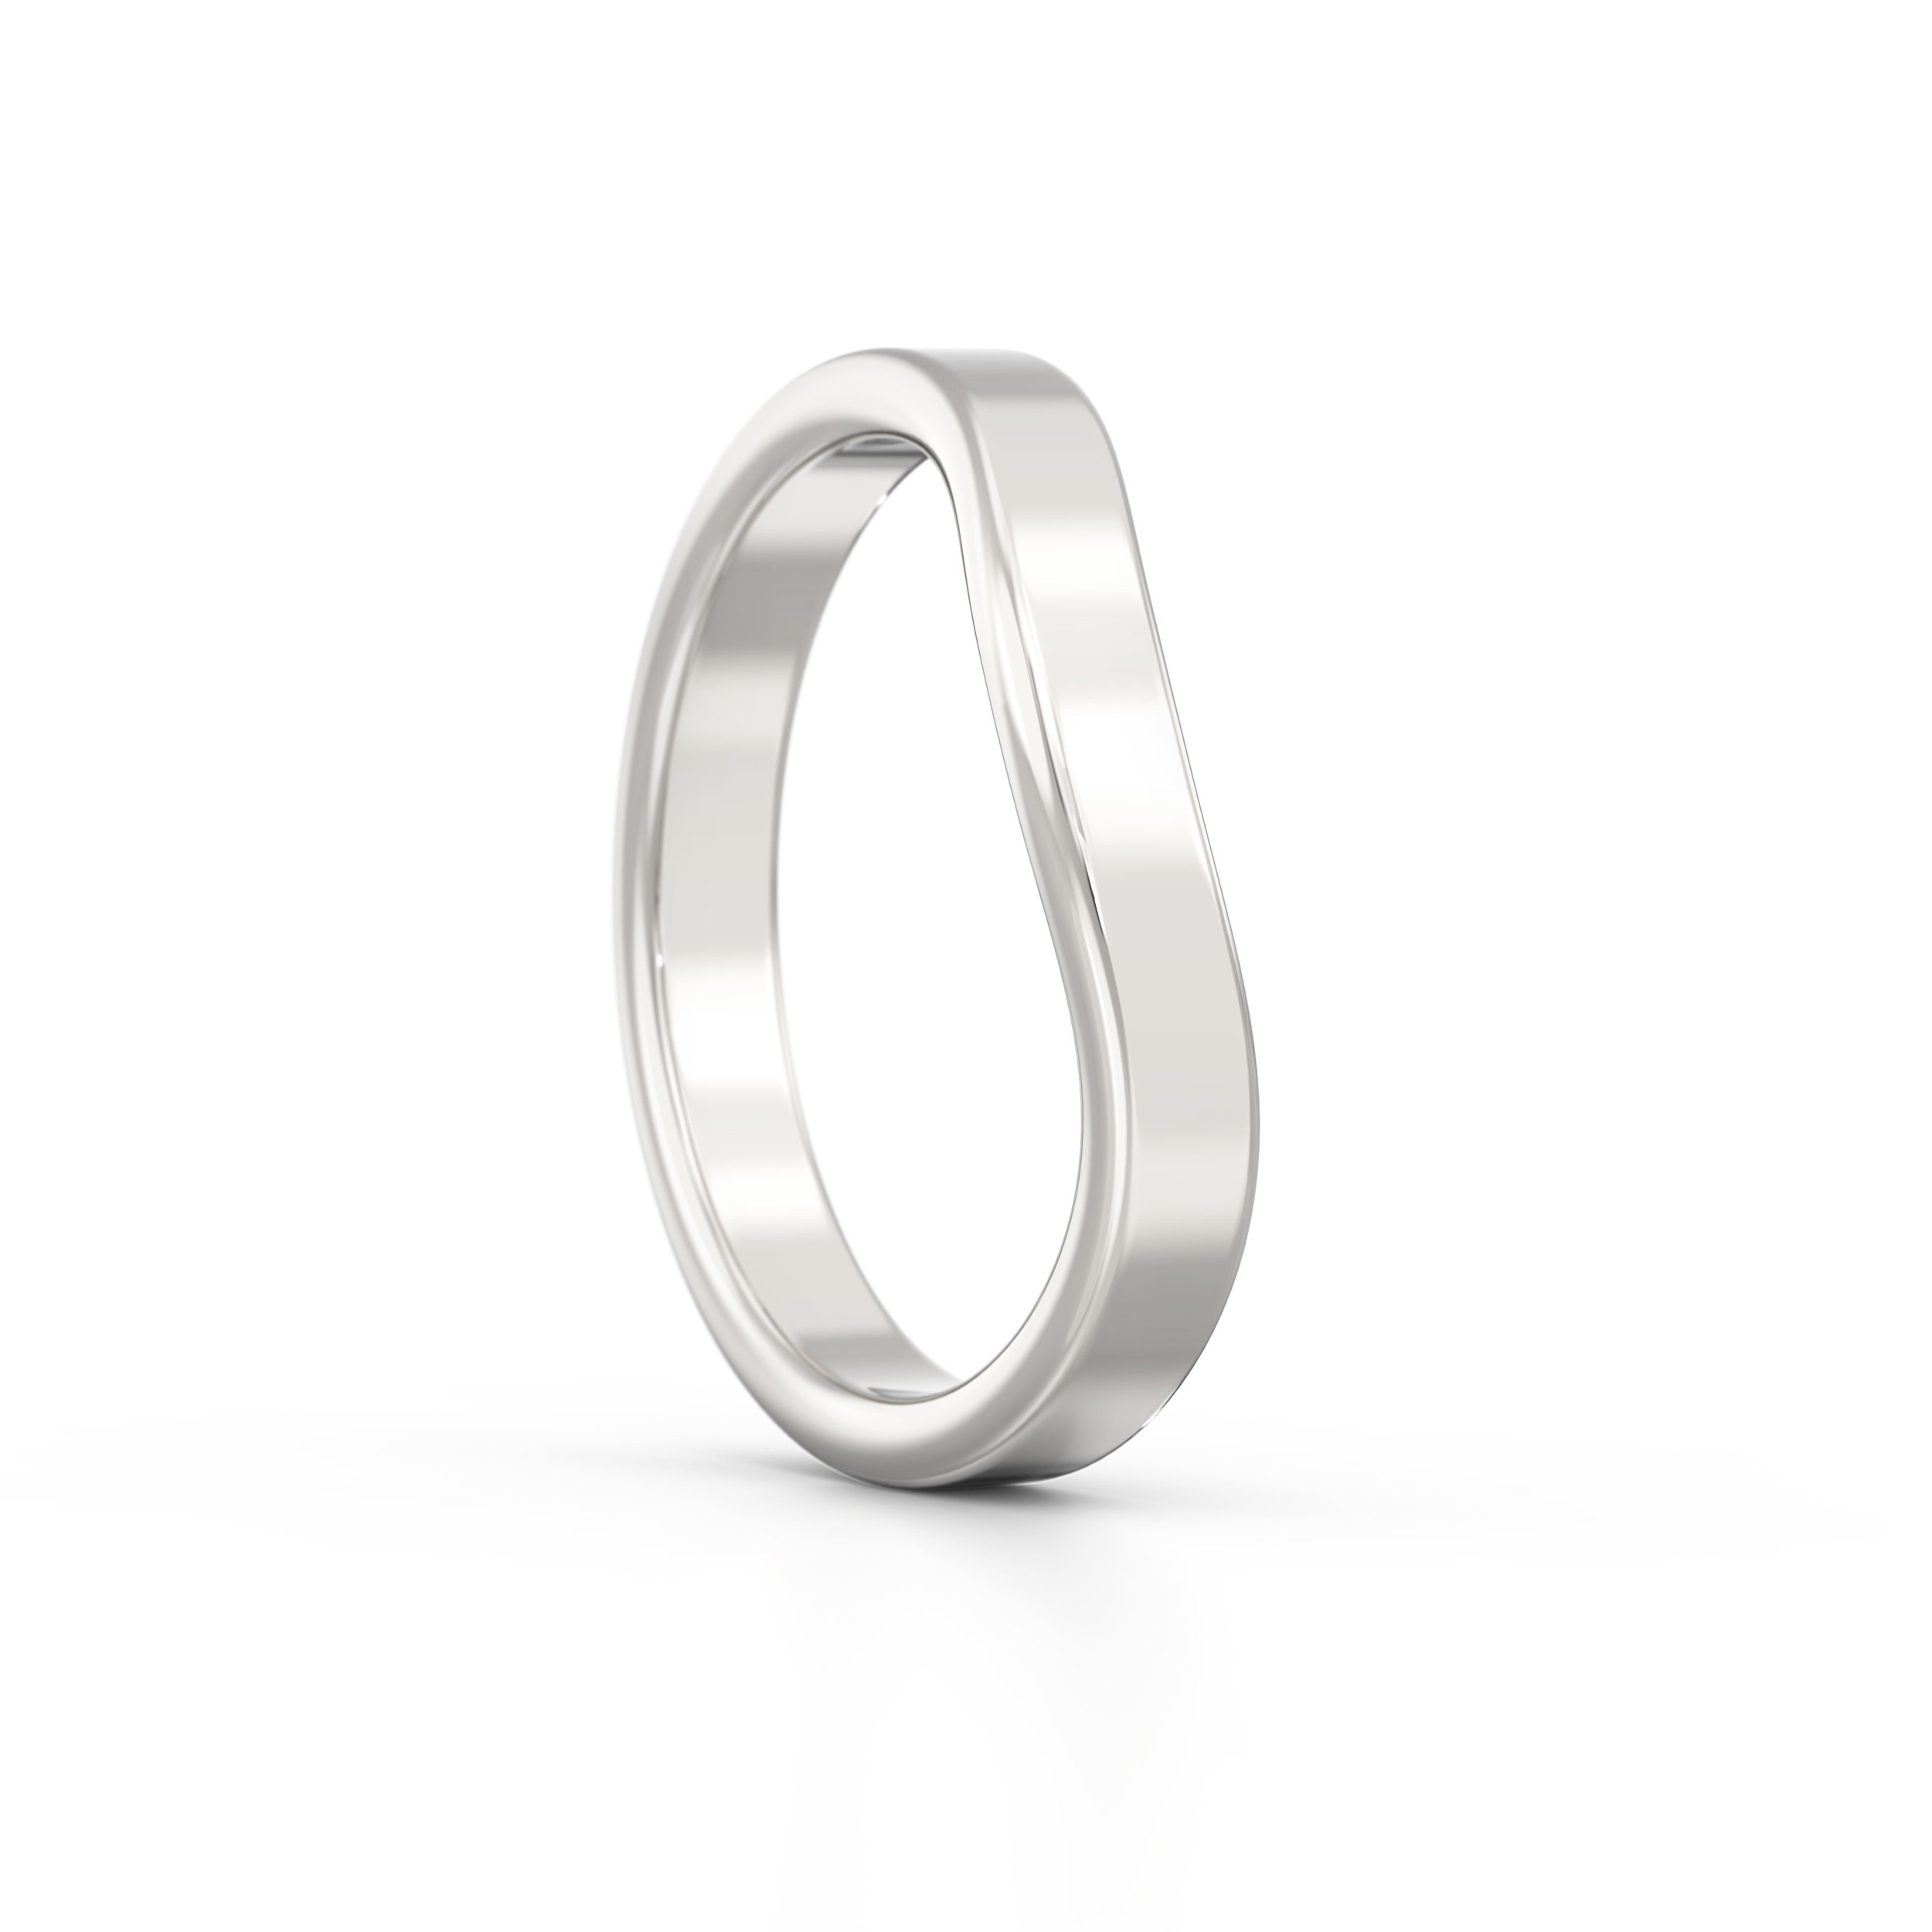 Flat soft edge wedding band | Hatton Garden | London